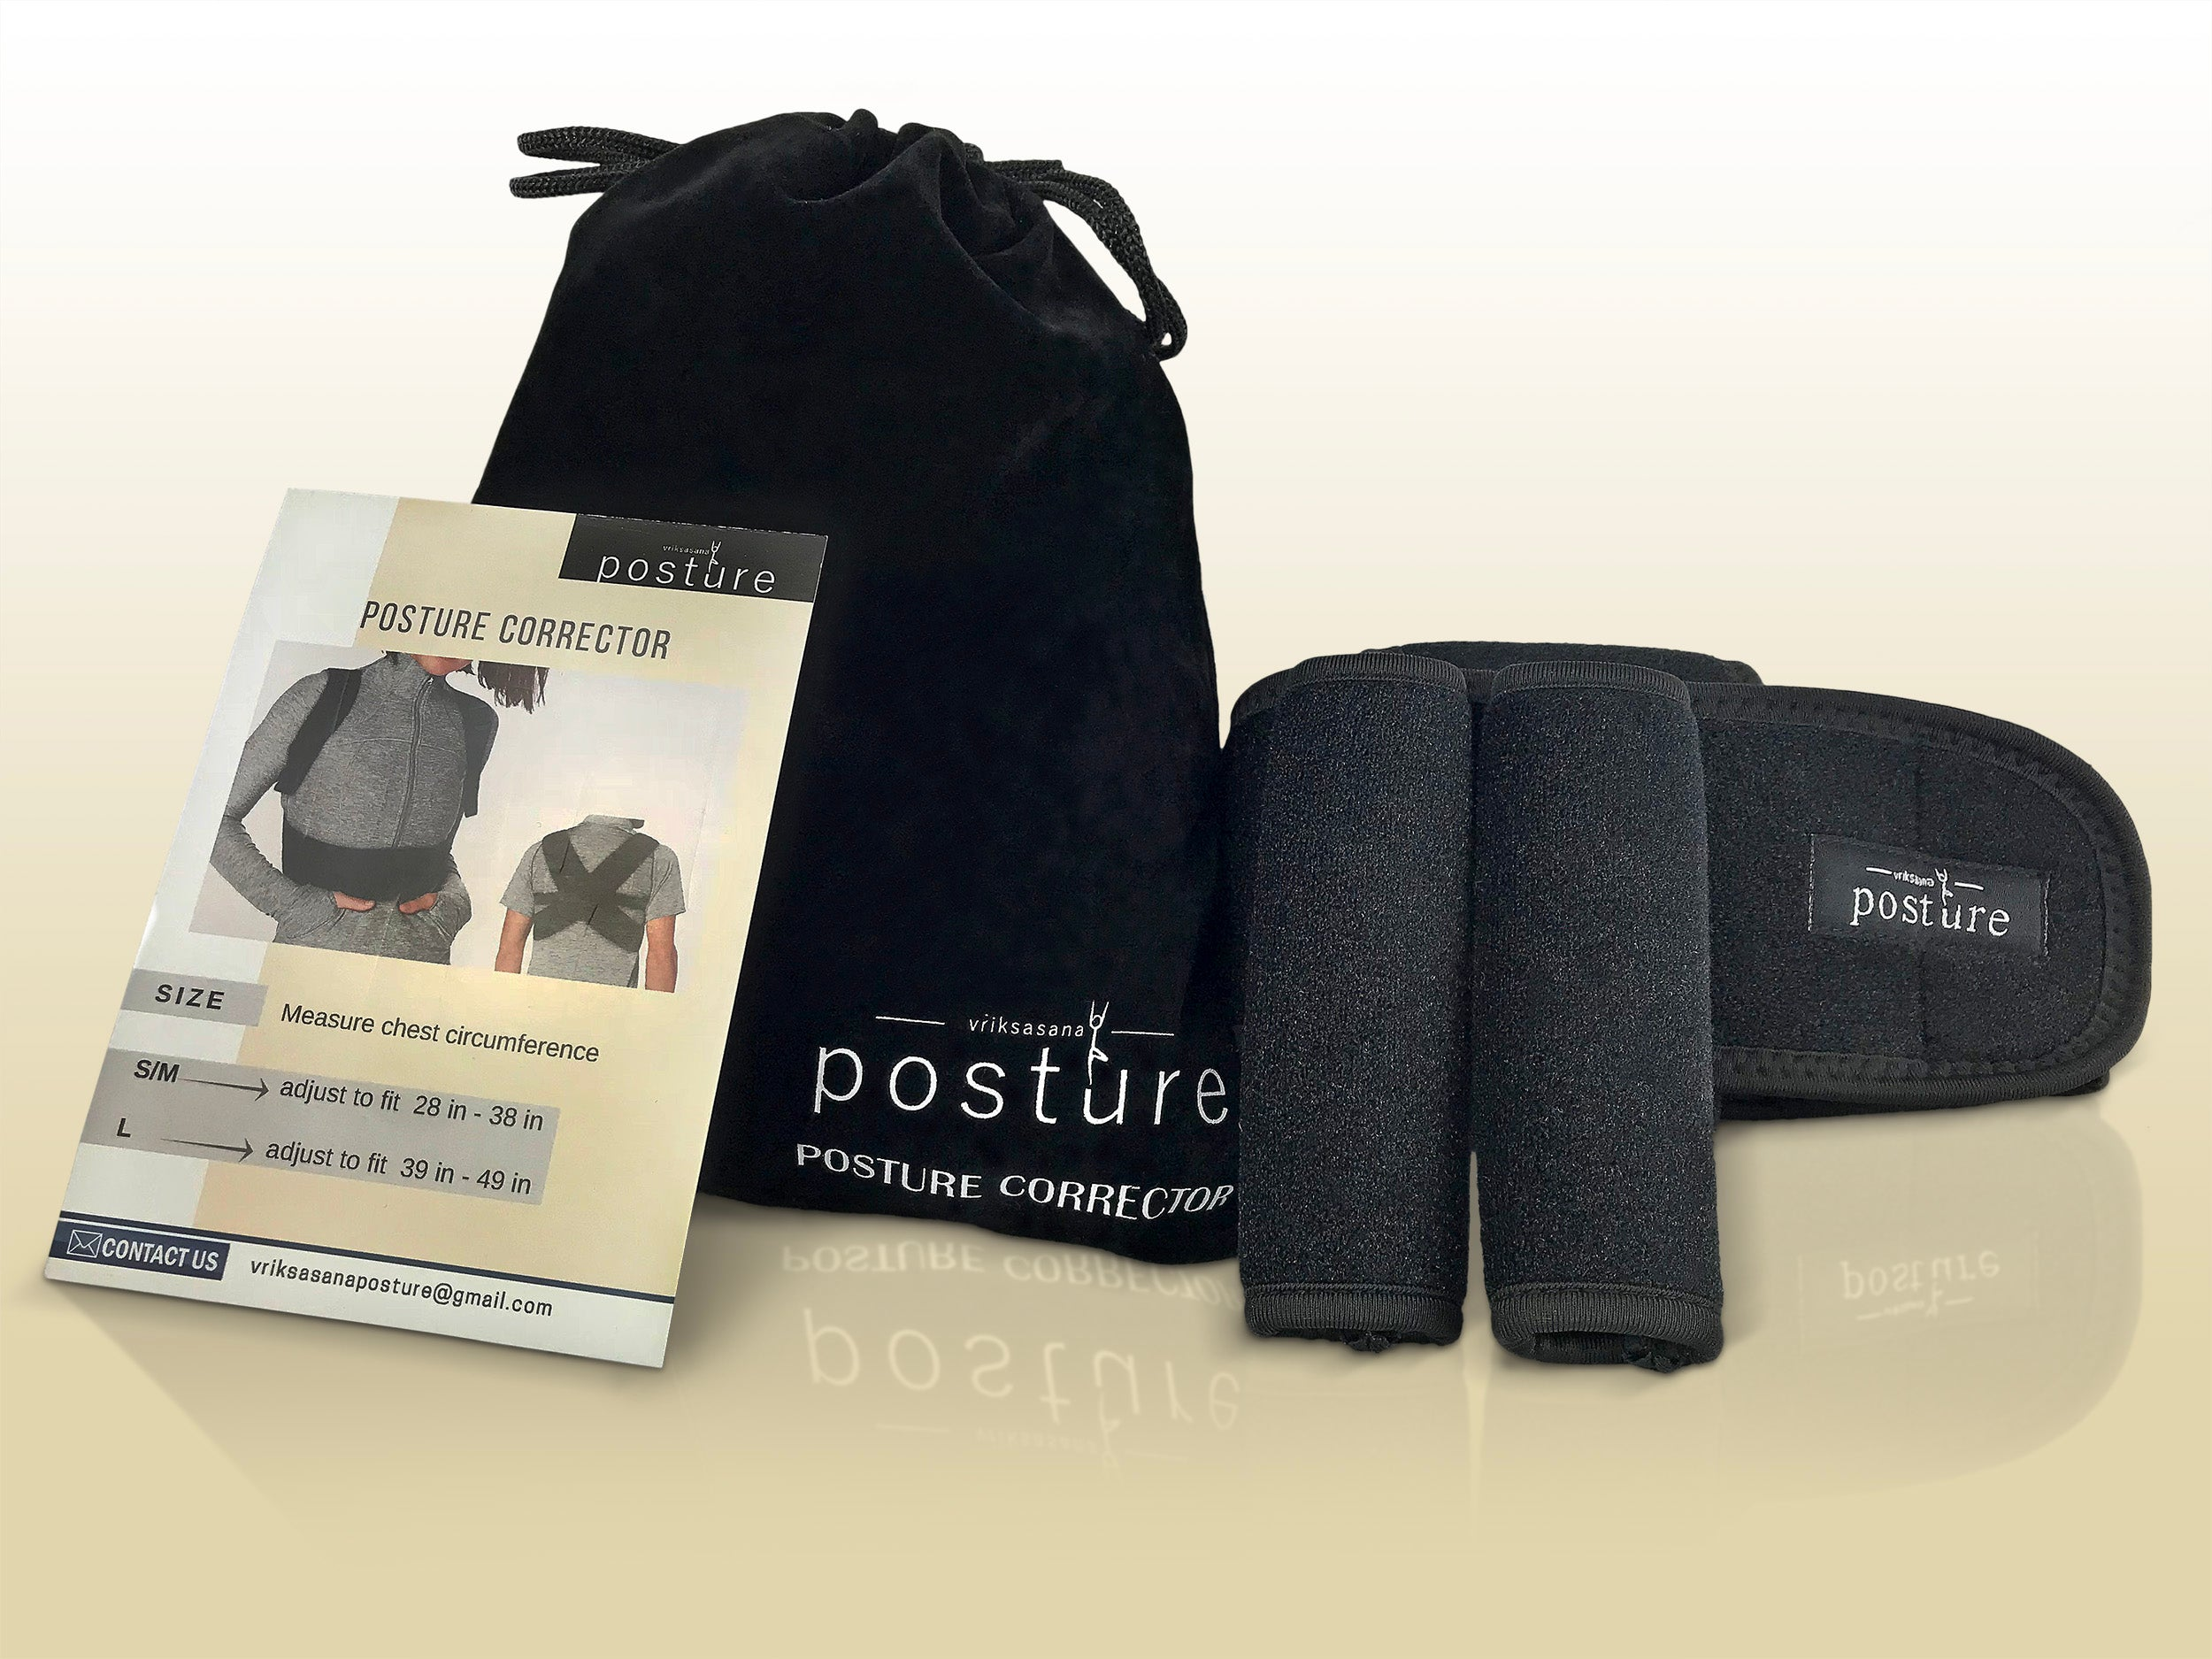 Posture corrector in a velvet pouch packaging